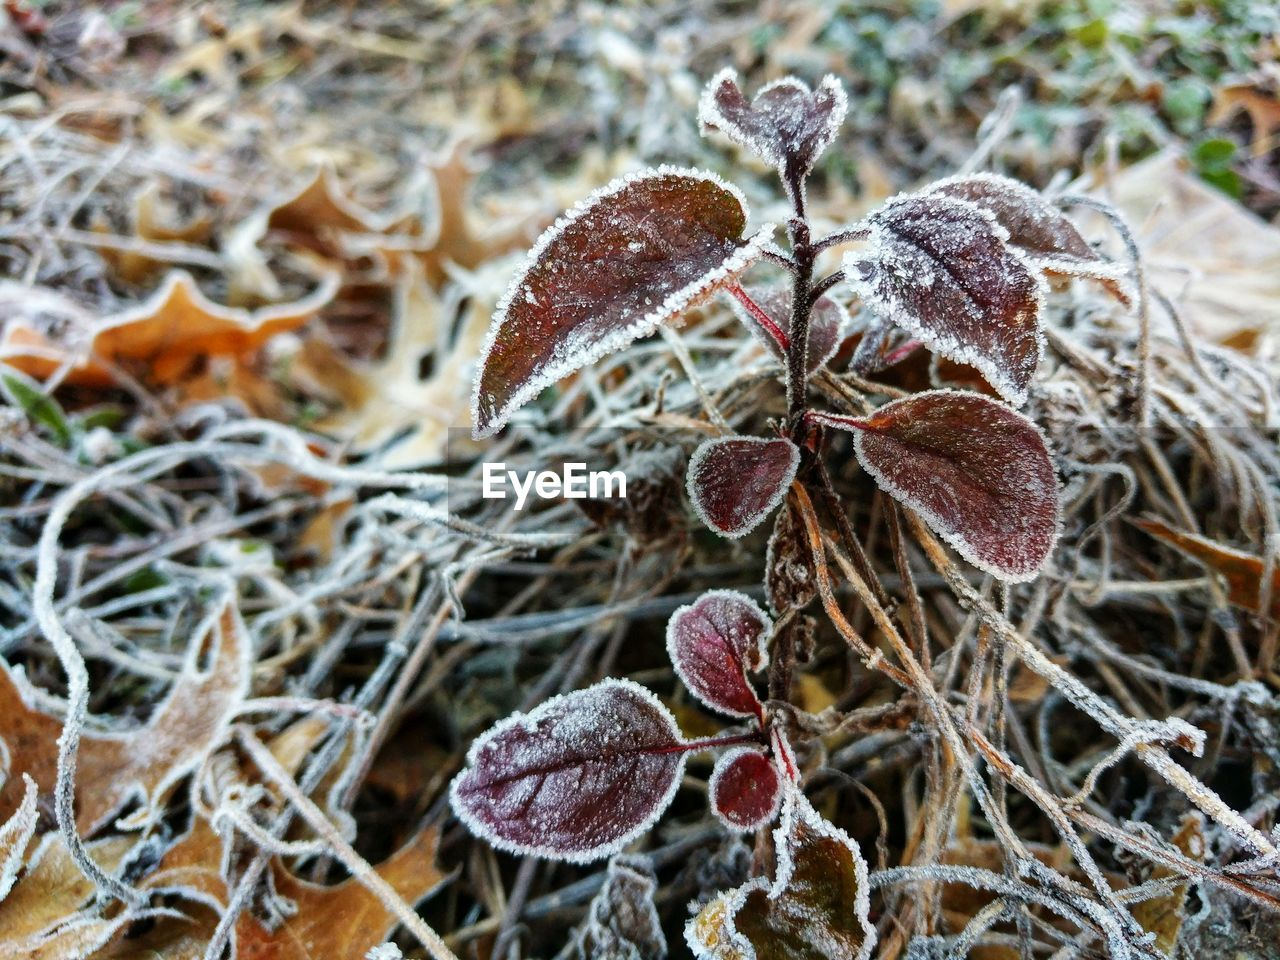 plant, close-up, growth, nature, beauty in nature, winter, no people, day, dry, frost, cold temperature, focus on foreground, frozen, leaf, plant part, twig, fragility, vulnerability, land, outdoors, ice, wilted plant, leaves